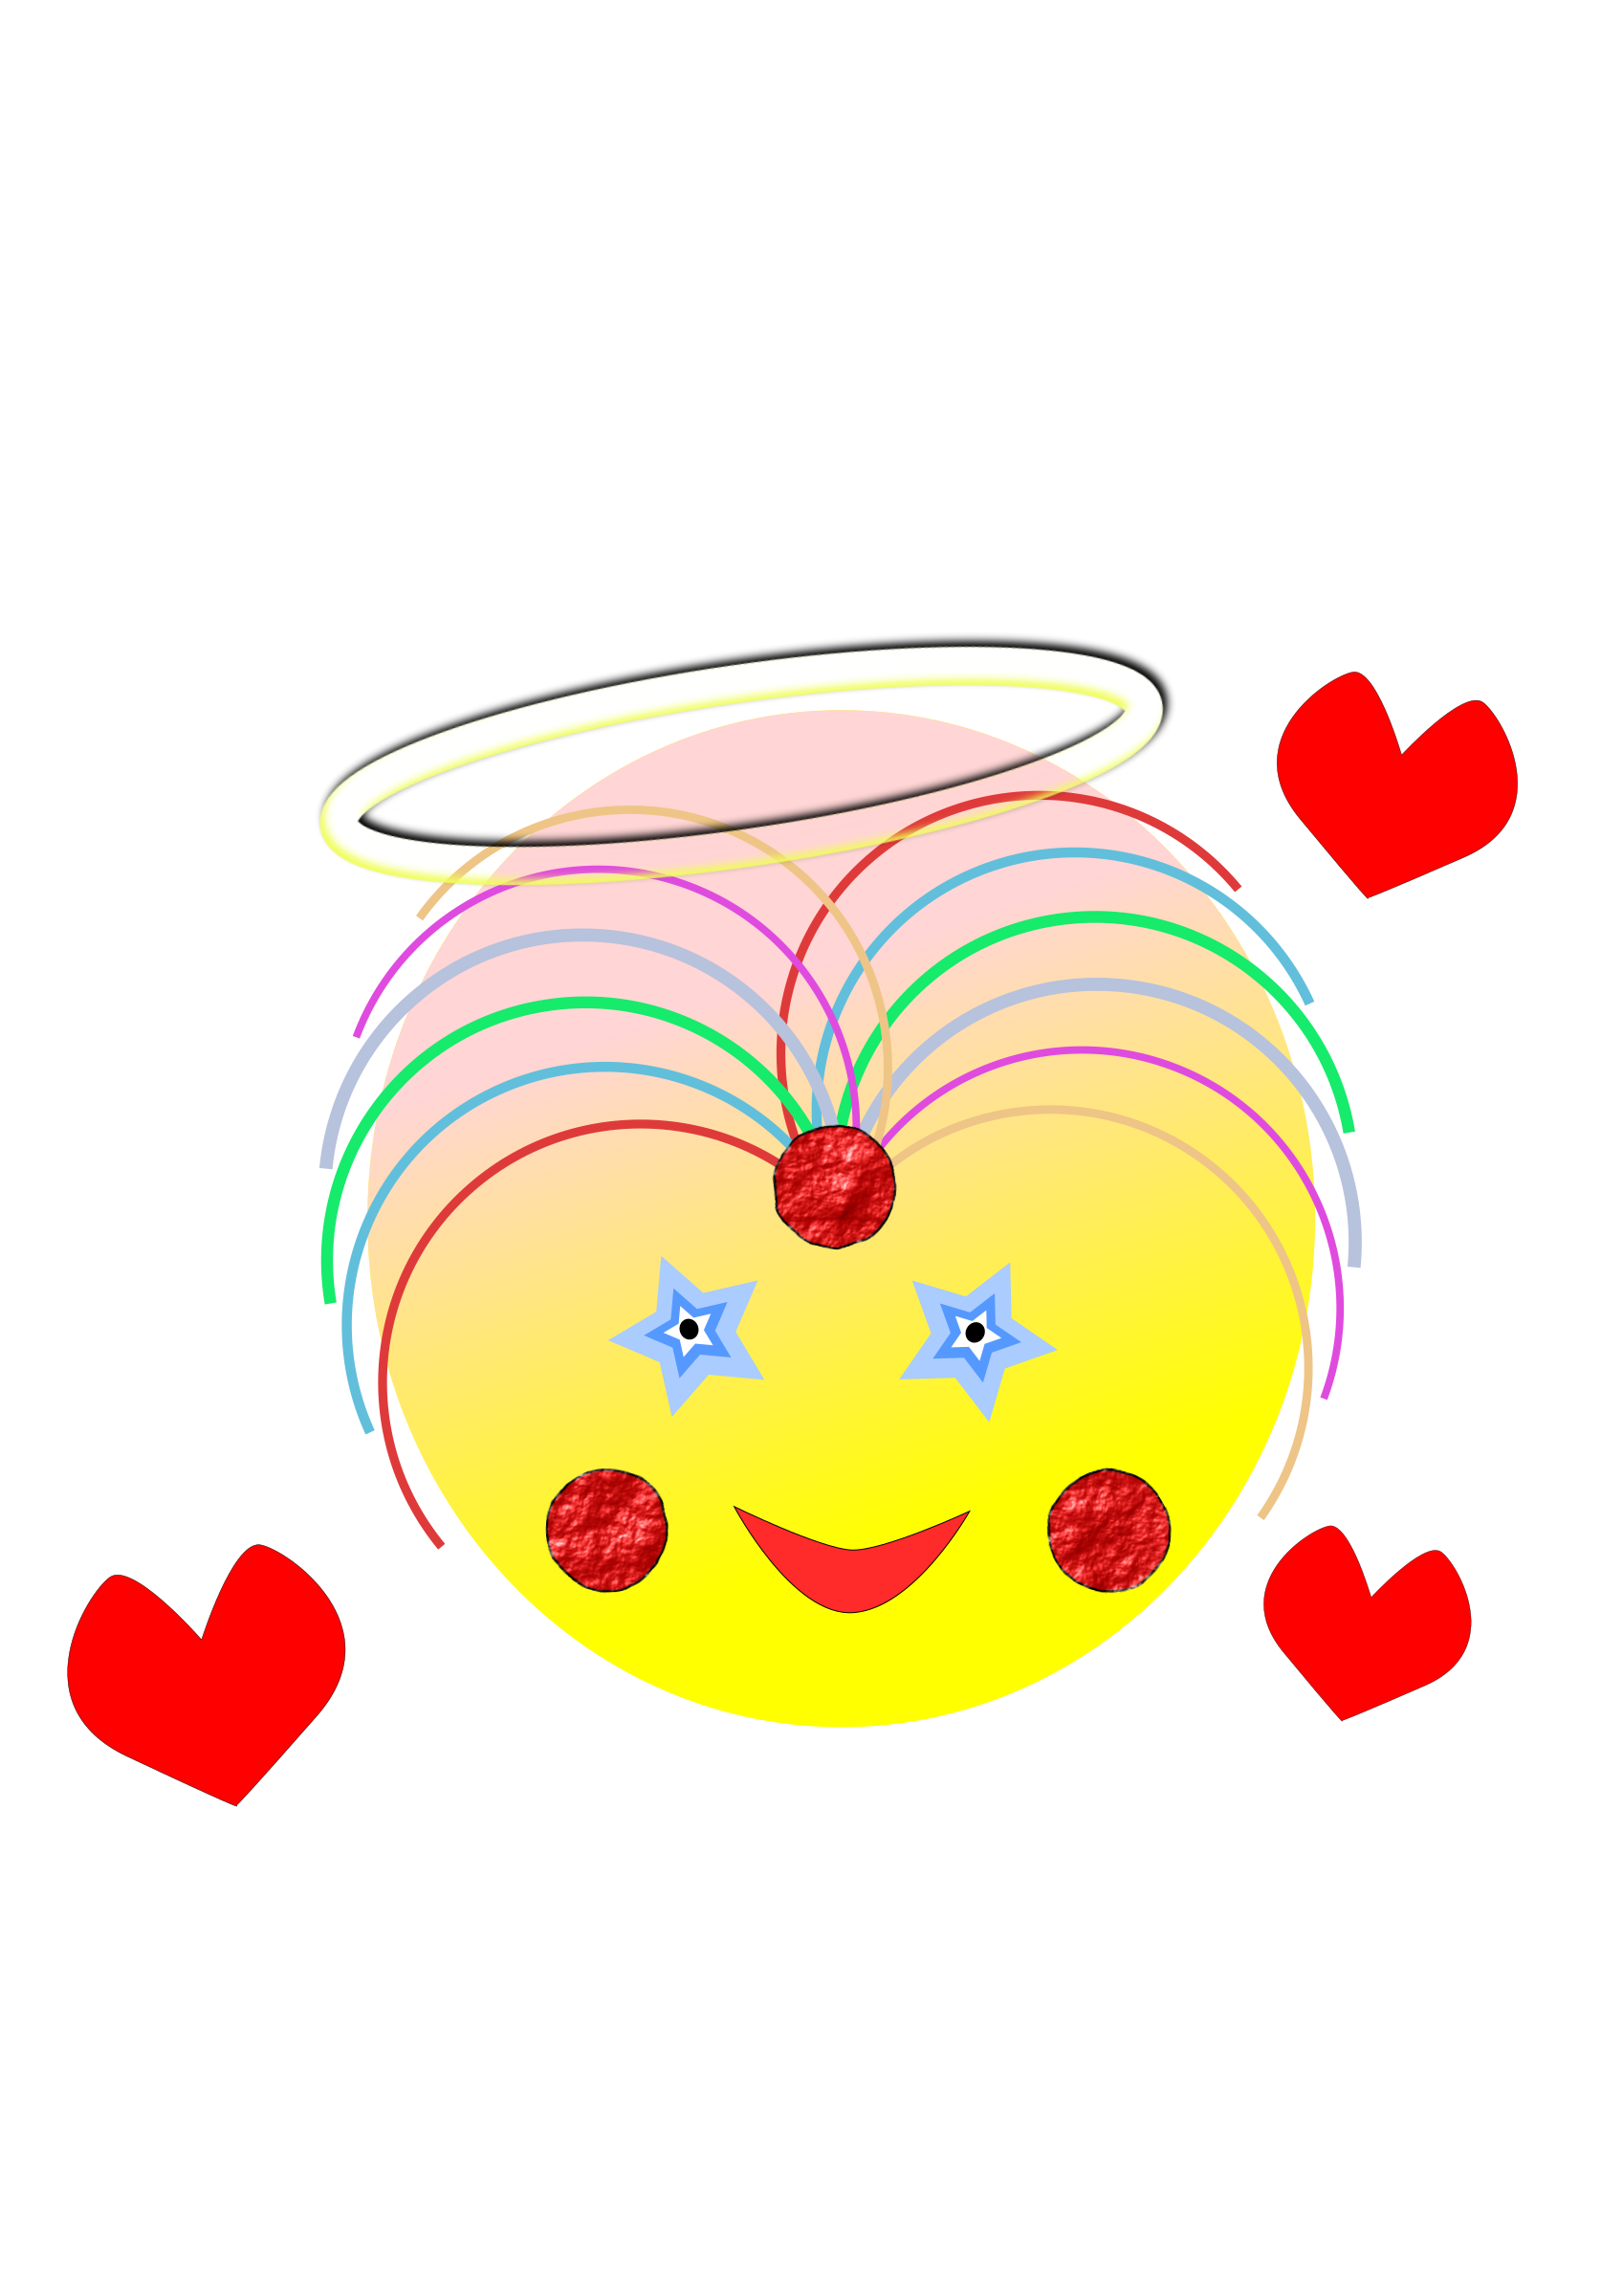 Angel heart clipart vector royalty free Clipart - The face of an angel vector royalty free